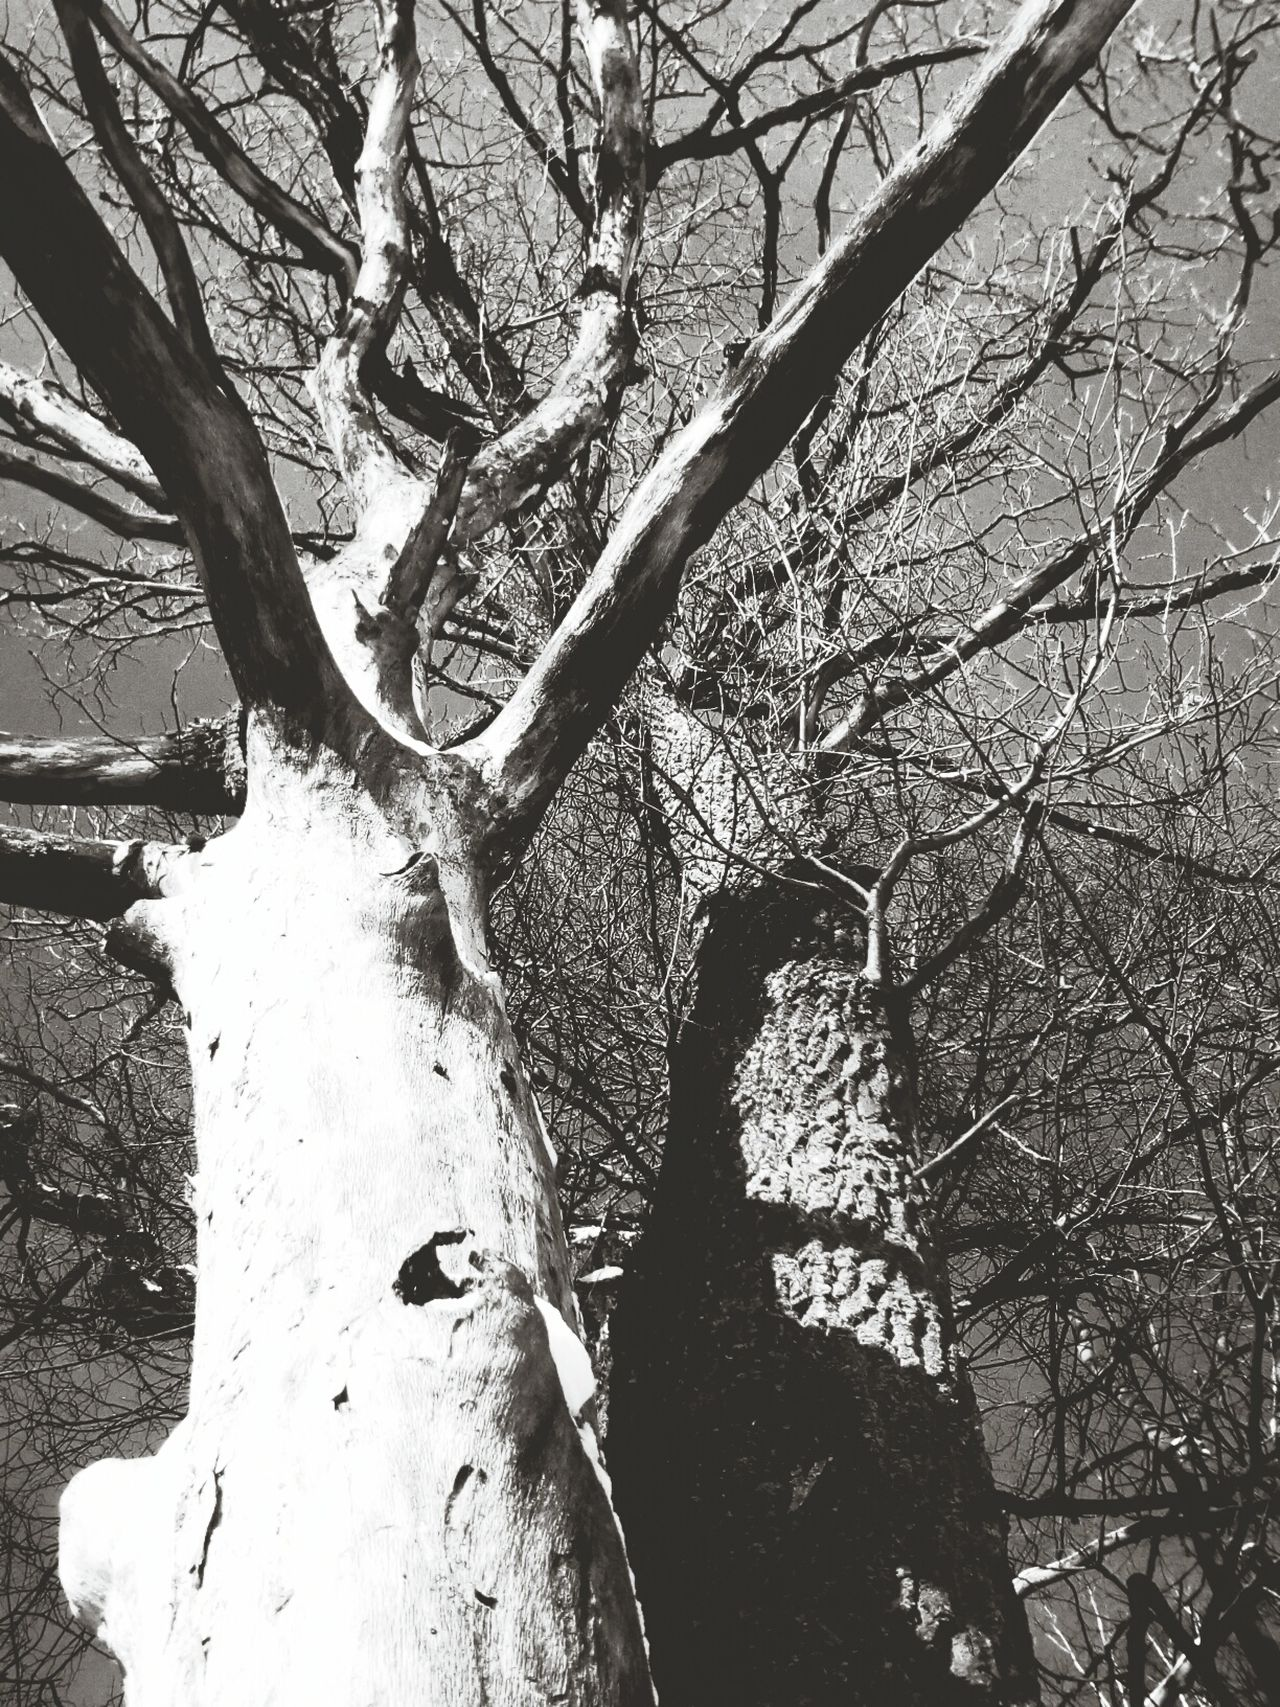 Tree Low Angle View Tree Trunk Day No People Branch Nature Sky Outdoors Bare Tree Close-up Blackandwhite Beauty In Nature Black And White EyeEm Nature Lover Nature_collection The Great Outdoors - 2016 EyeEm Awards Black & White Tree Trunk Frozen Low Angle View Tree Weather Blackandwhite Photography Silhouette